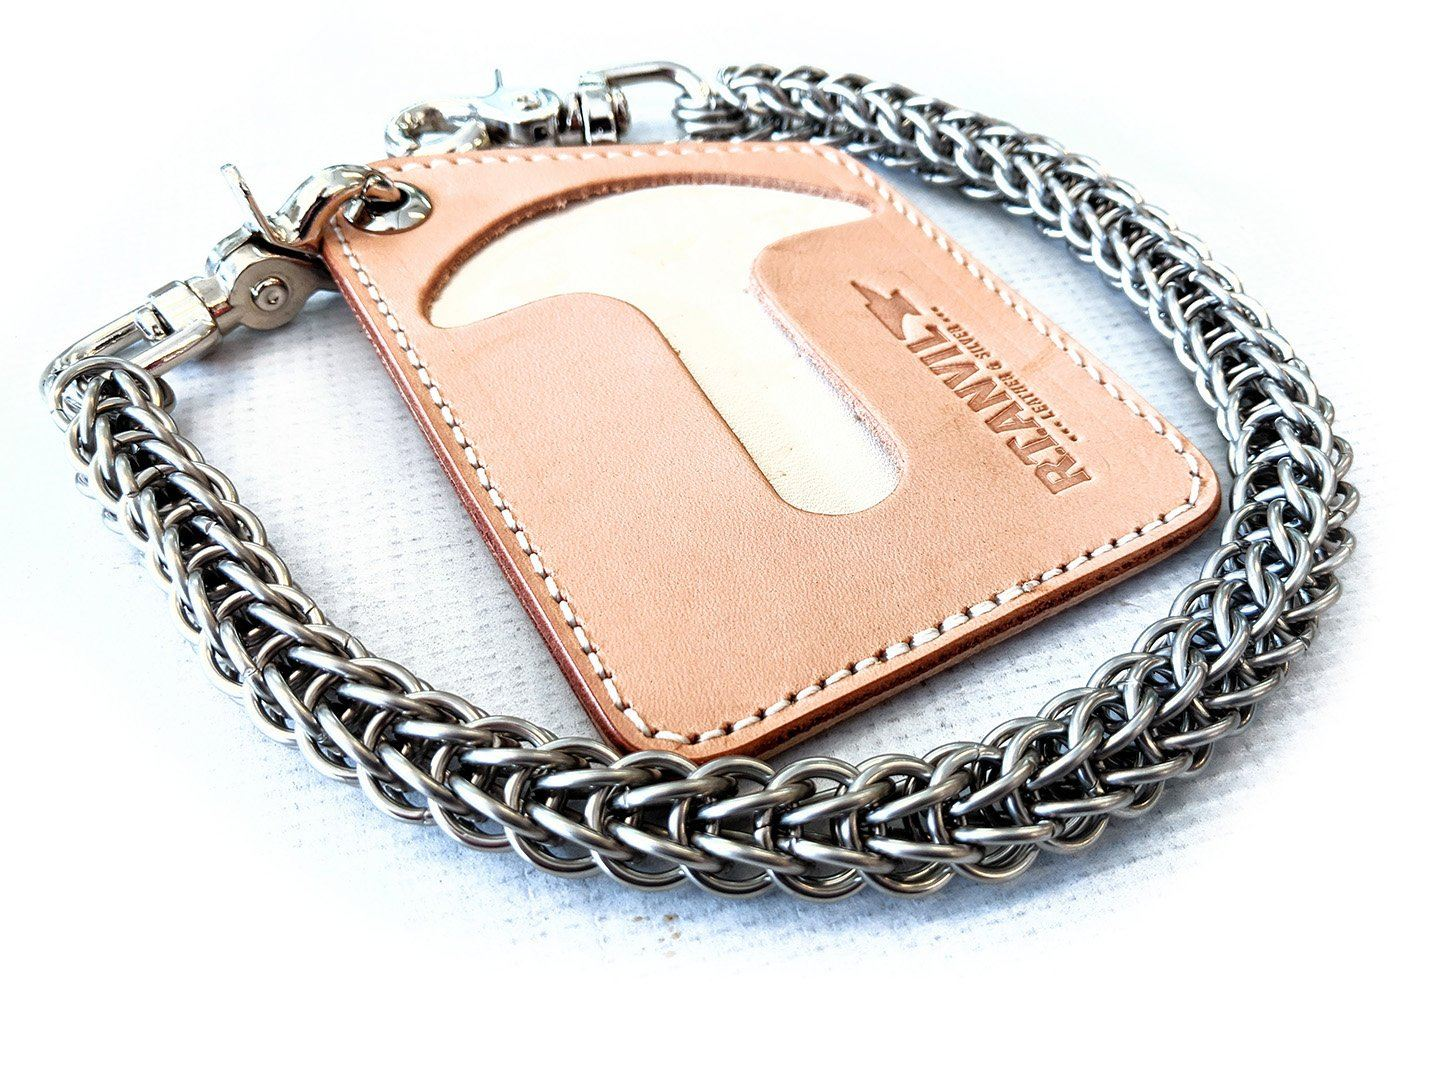 Puritan Chain Wallet - Natural Cowhide